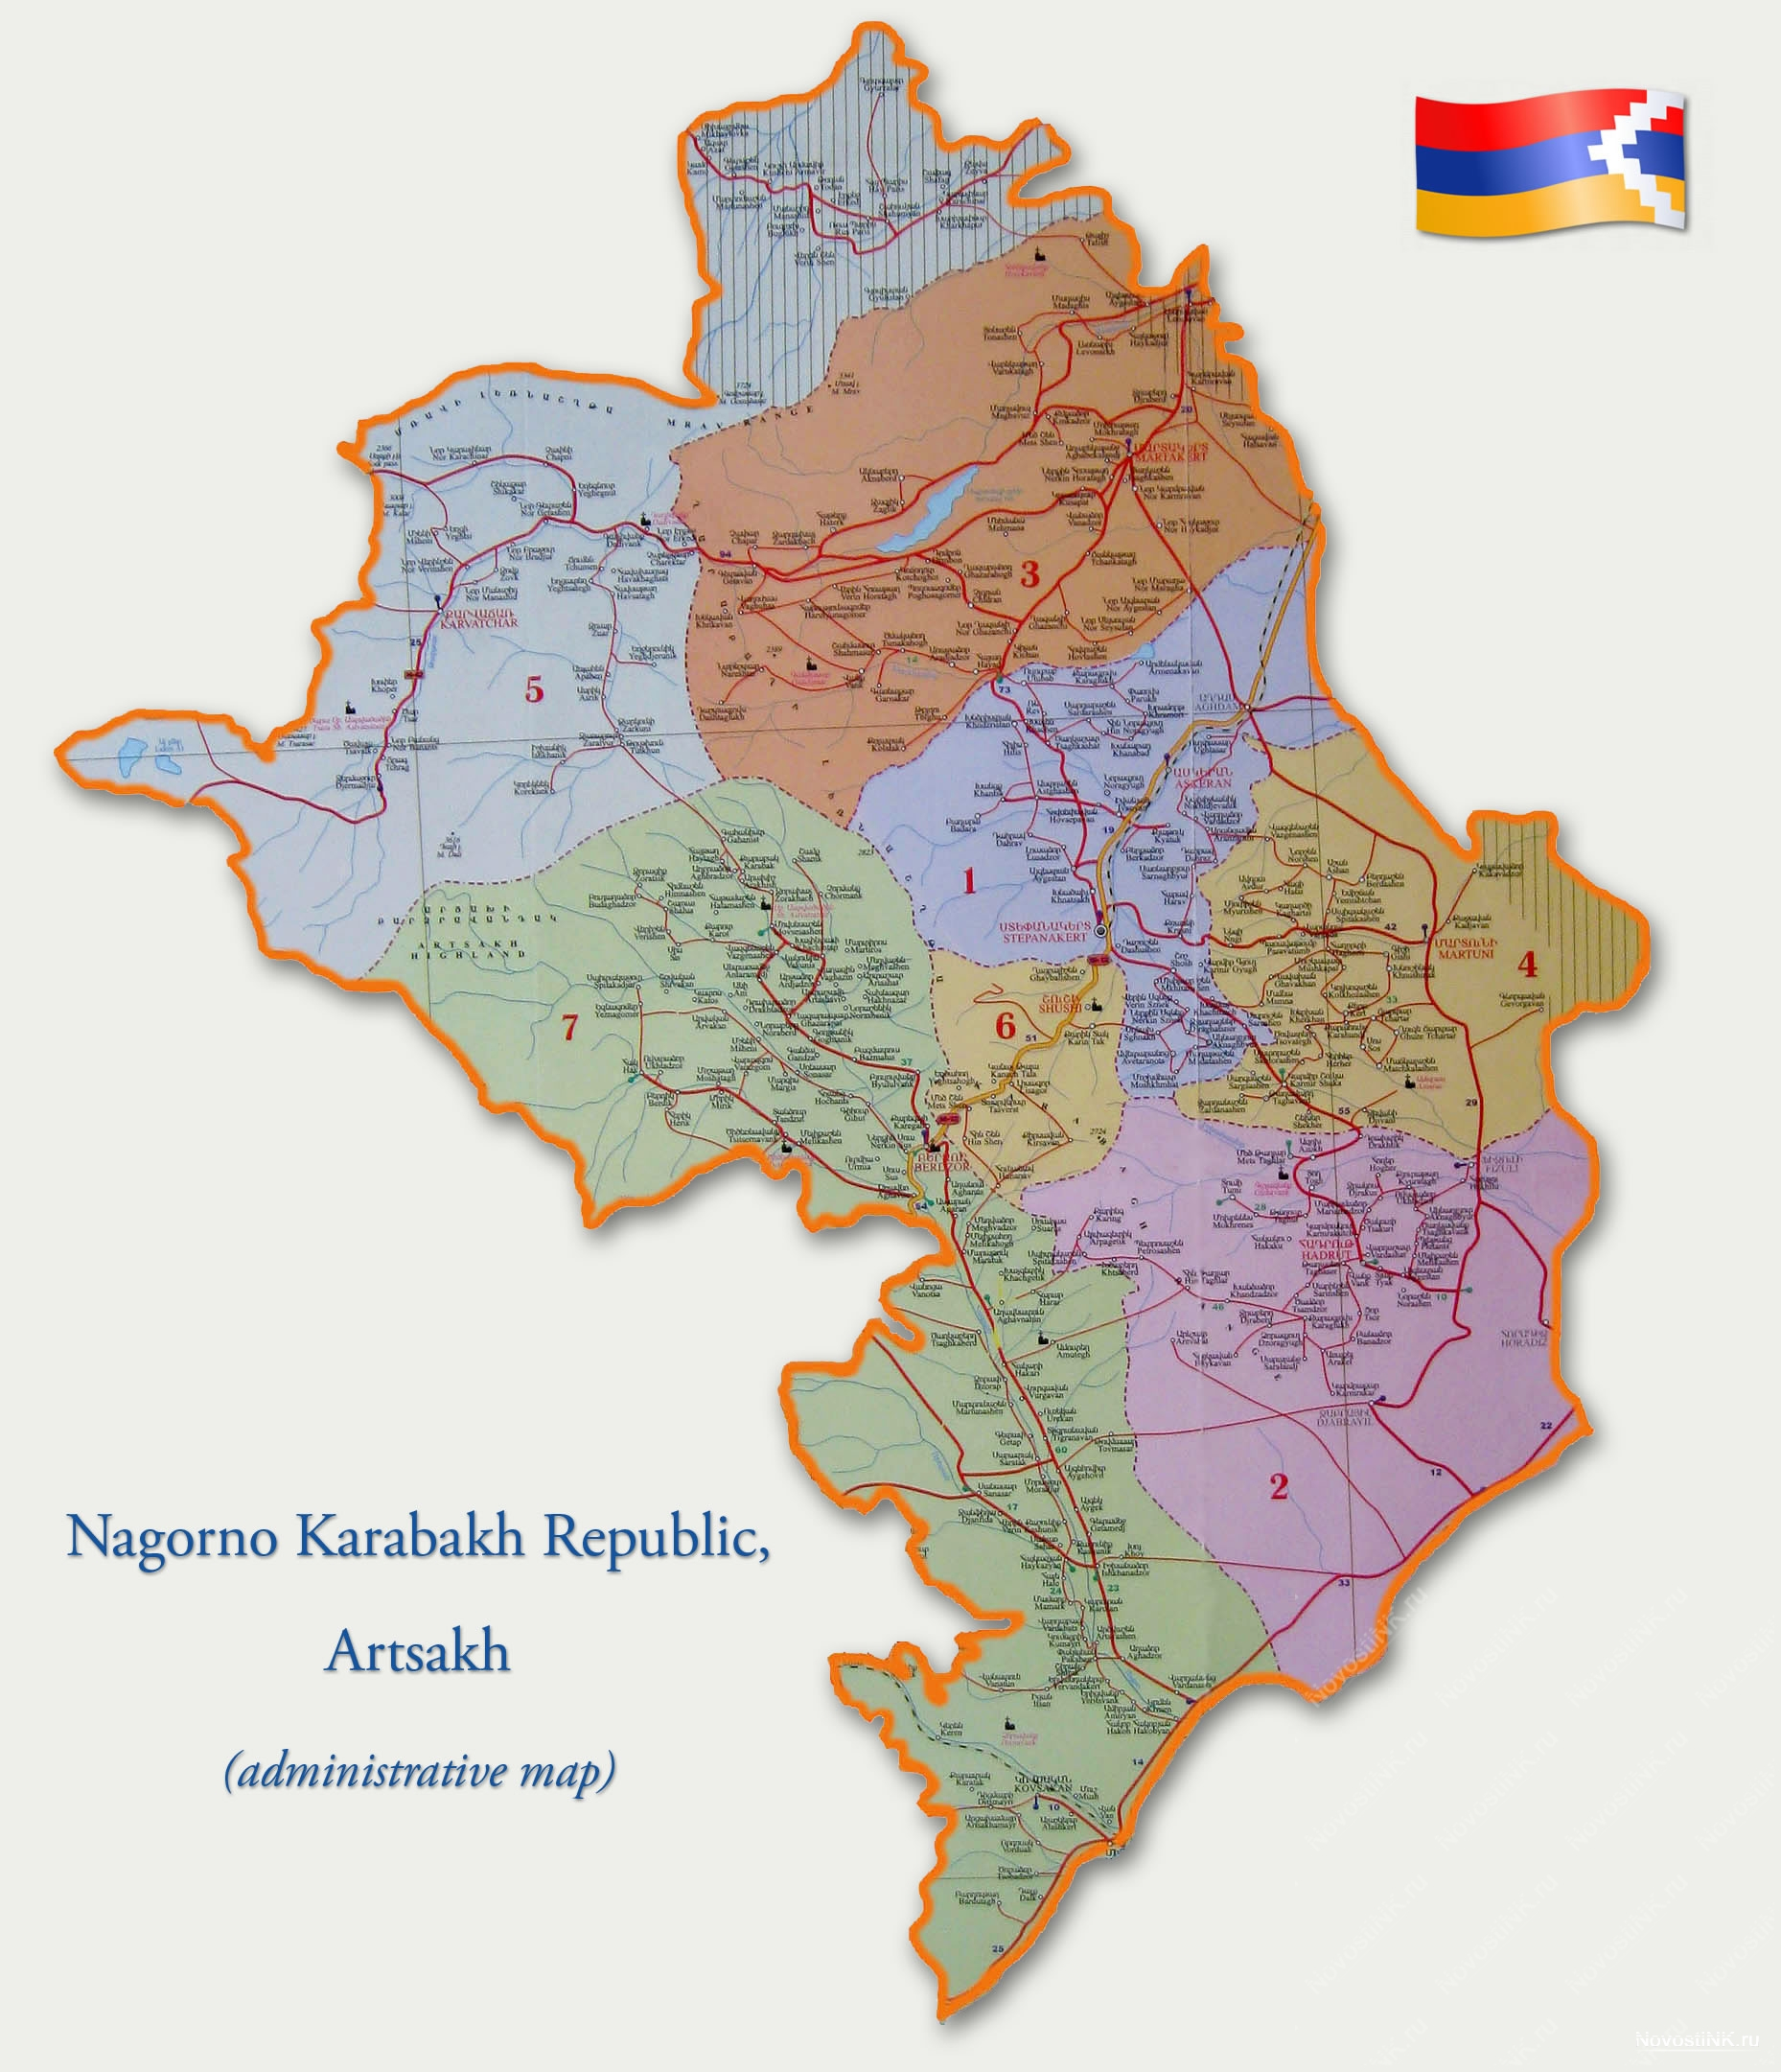 A New Legal Approach Towards the Nagorno-Karabakh Conflict Peaceful Resolution